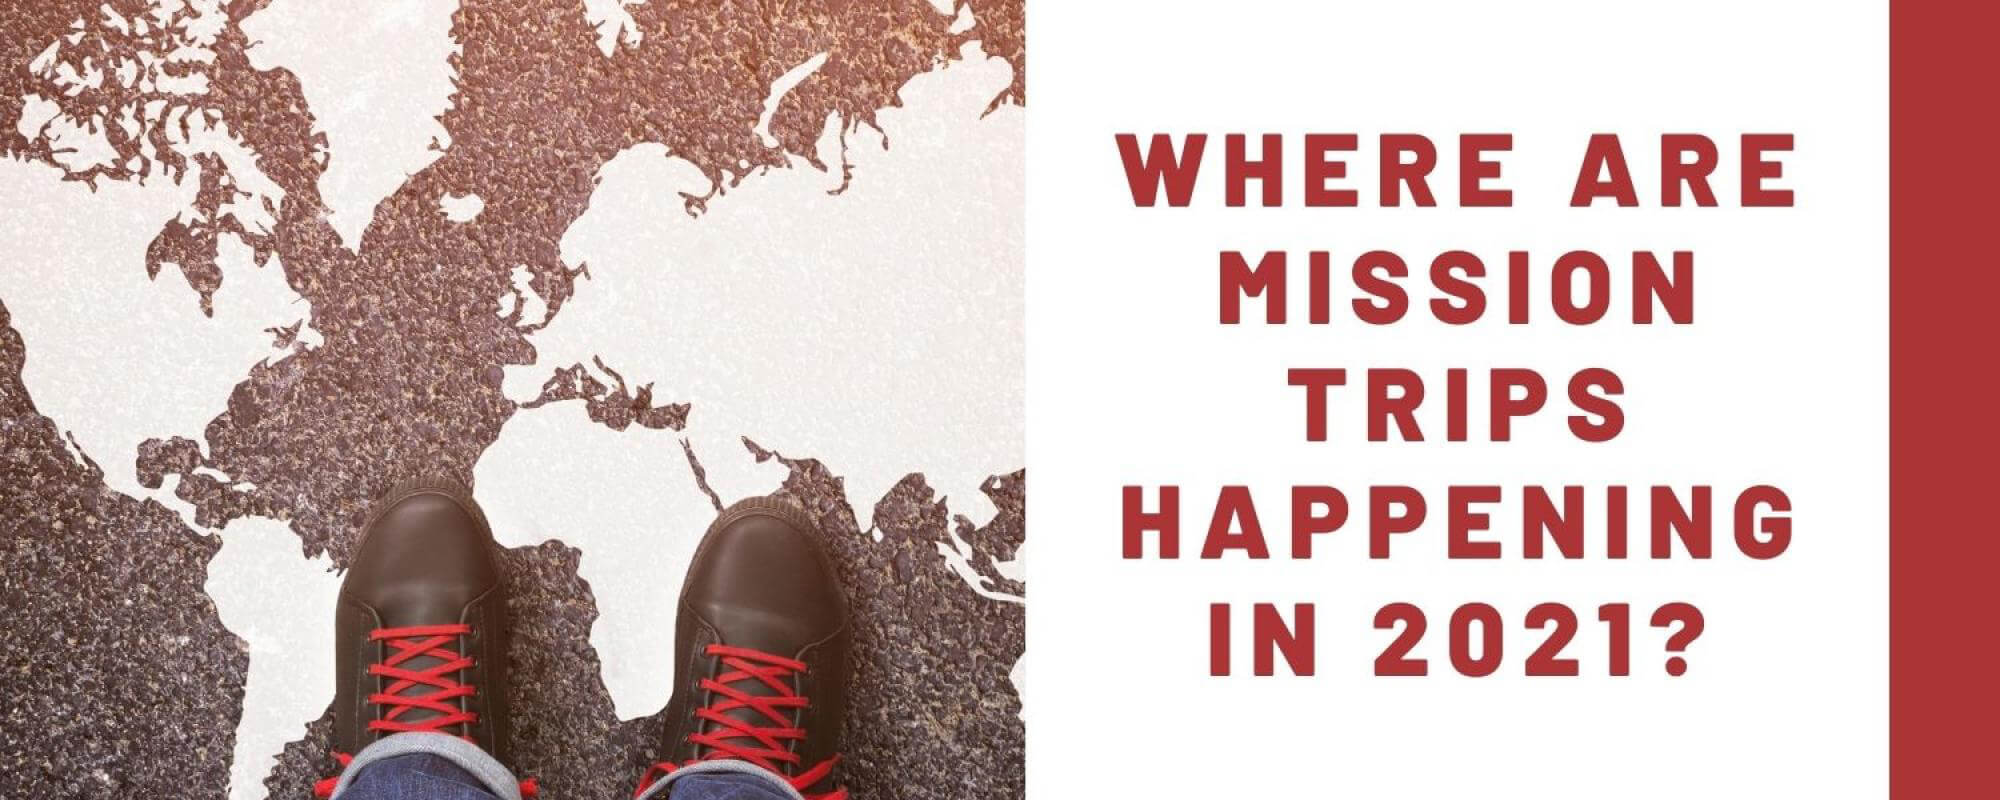 Where are mission trips happening in 2021?